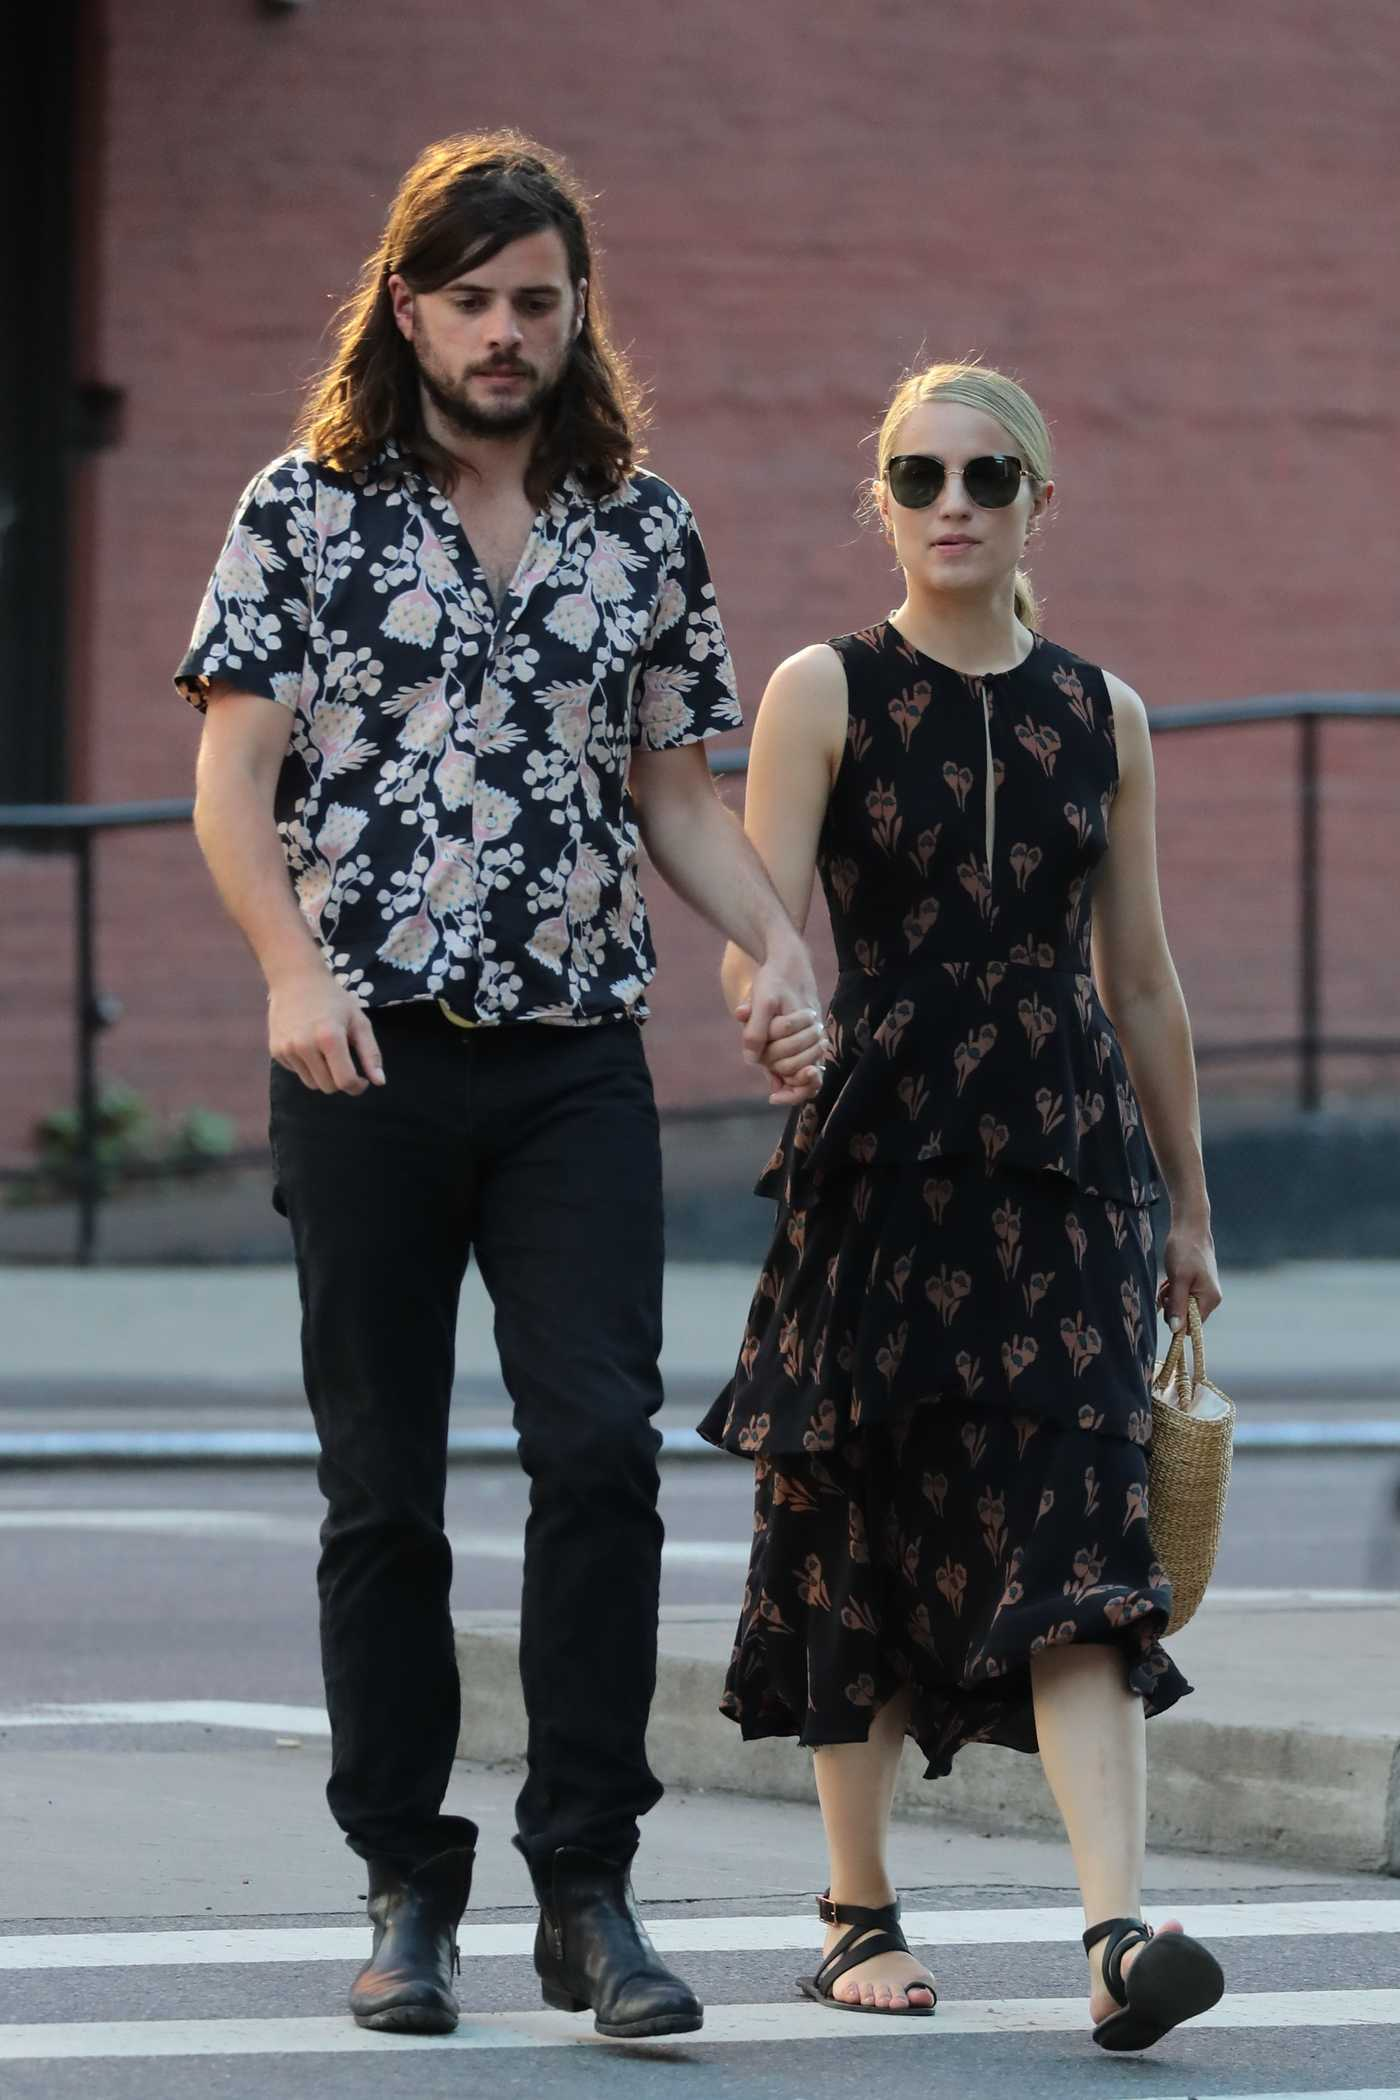 Dianna Agron Was Spotted Out with Her Husband Winston Marshall in New York City 07/09/2018